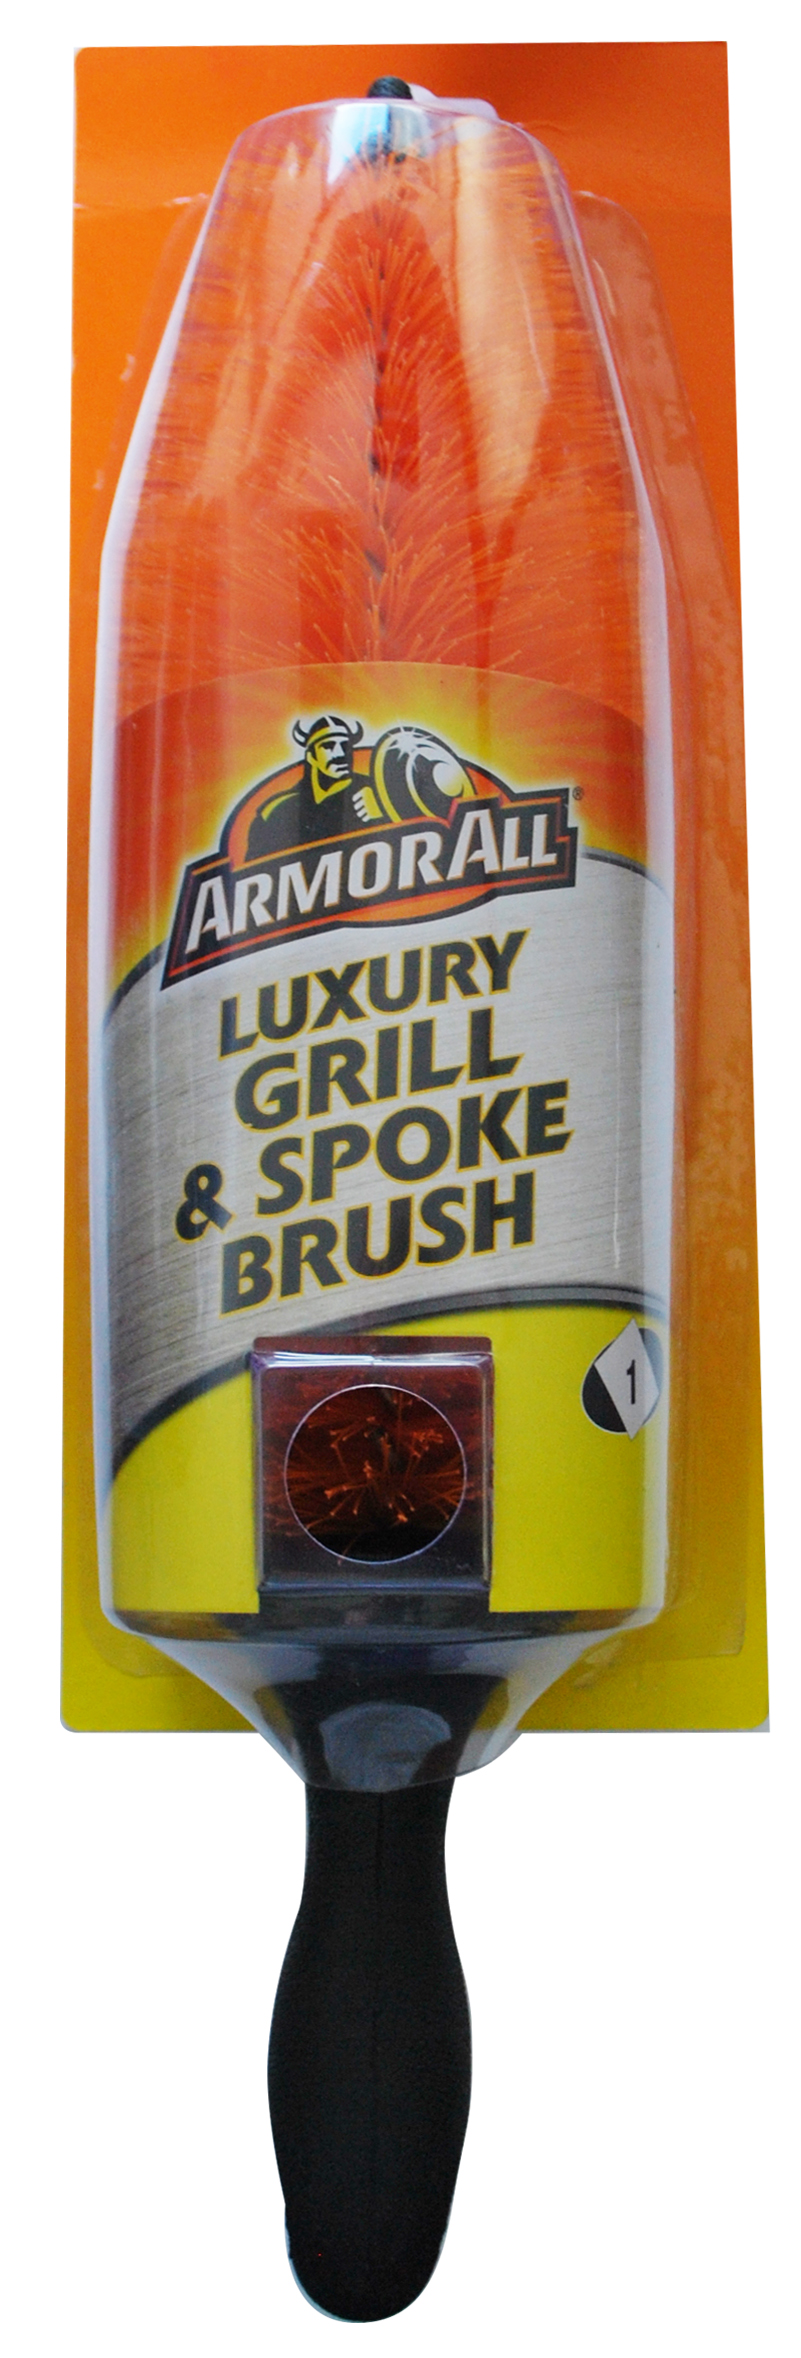 ARMOR ALL LUXURY GRILL & SPOKE BRUSH